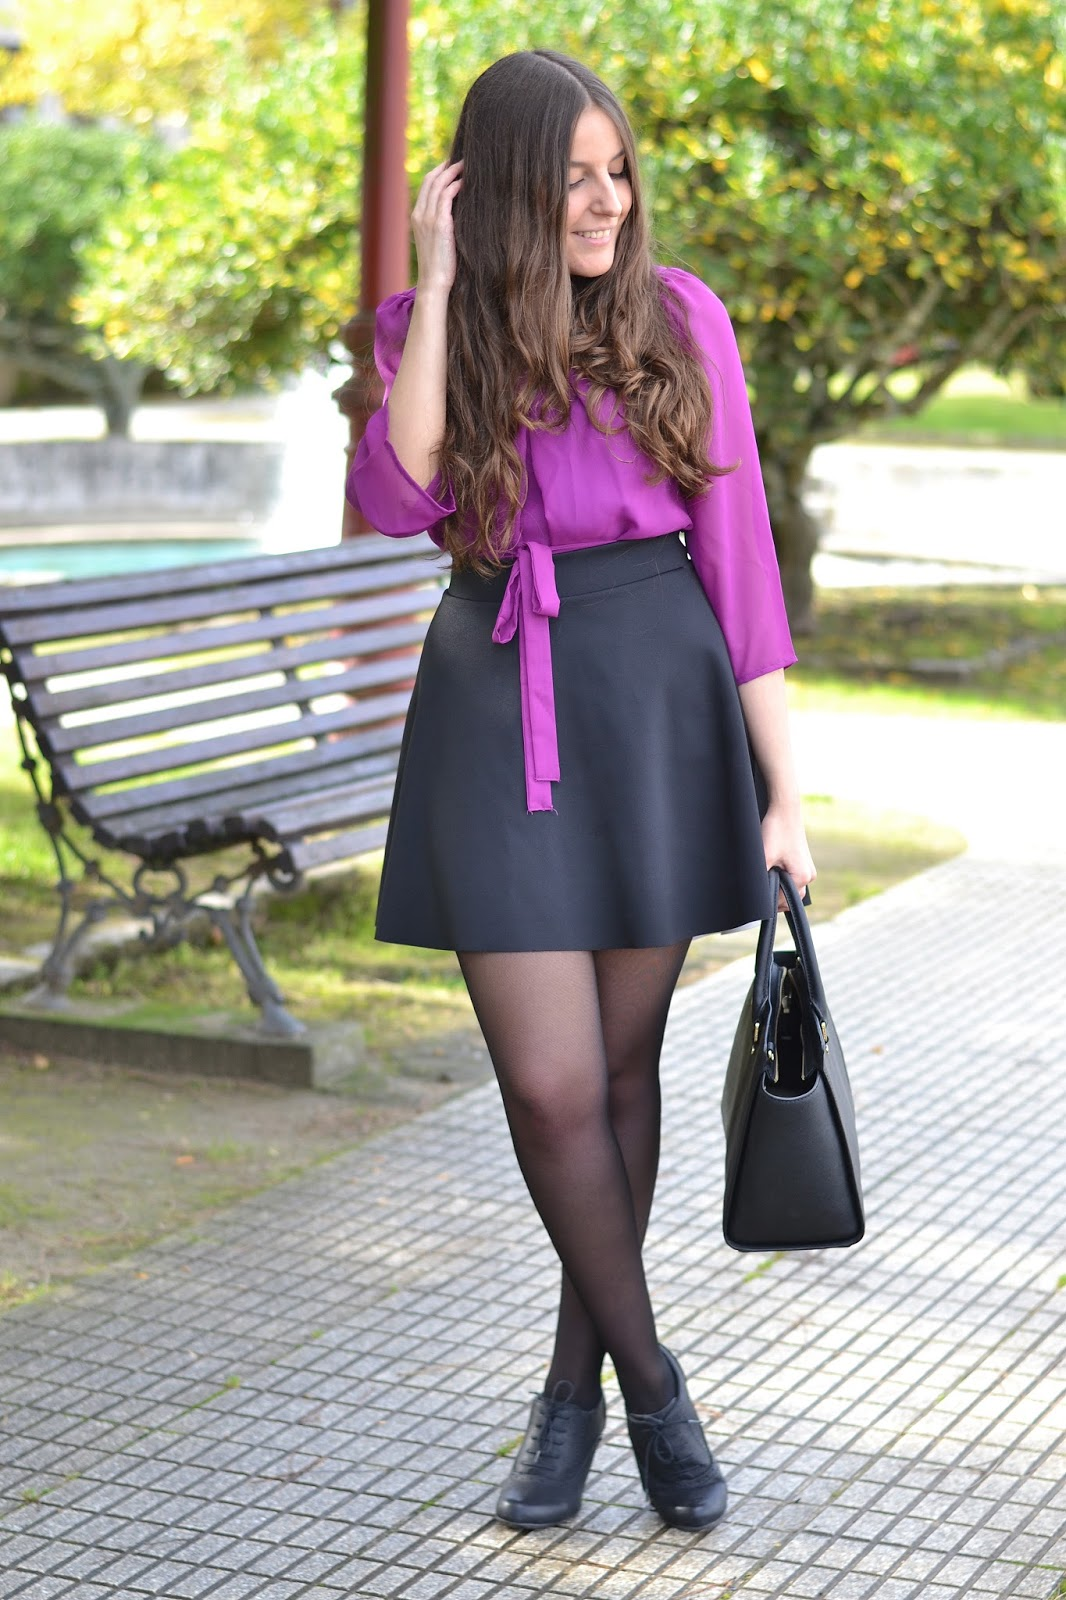 dress like a blouse, lucloset